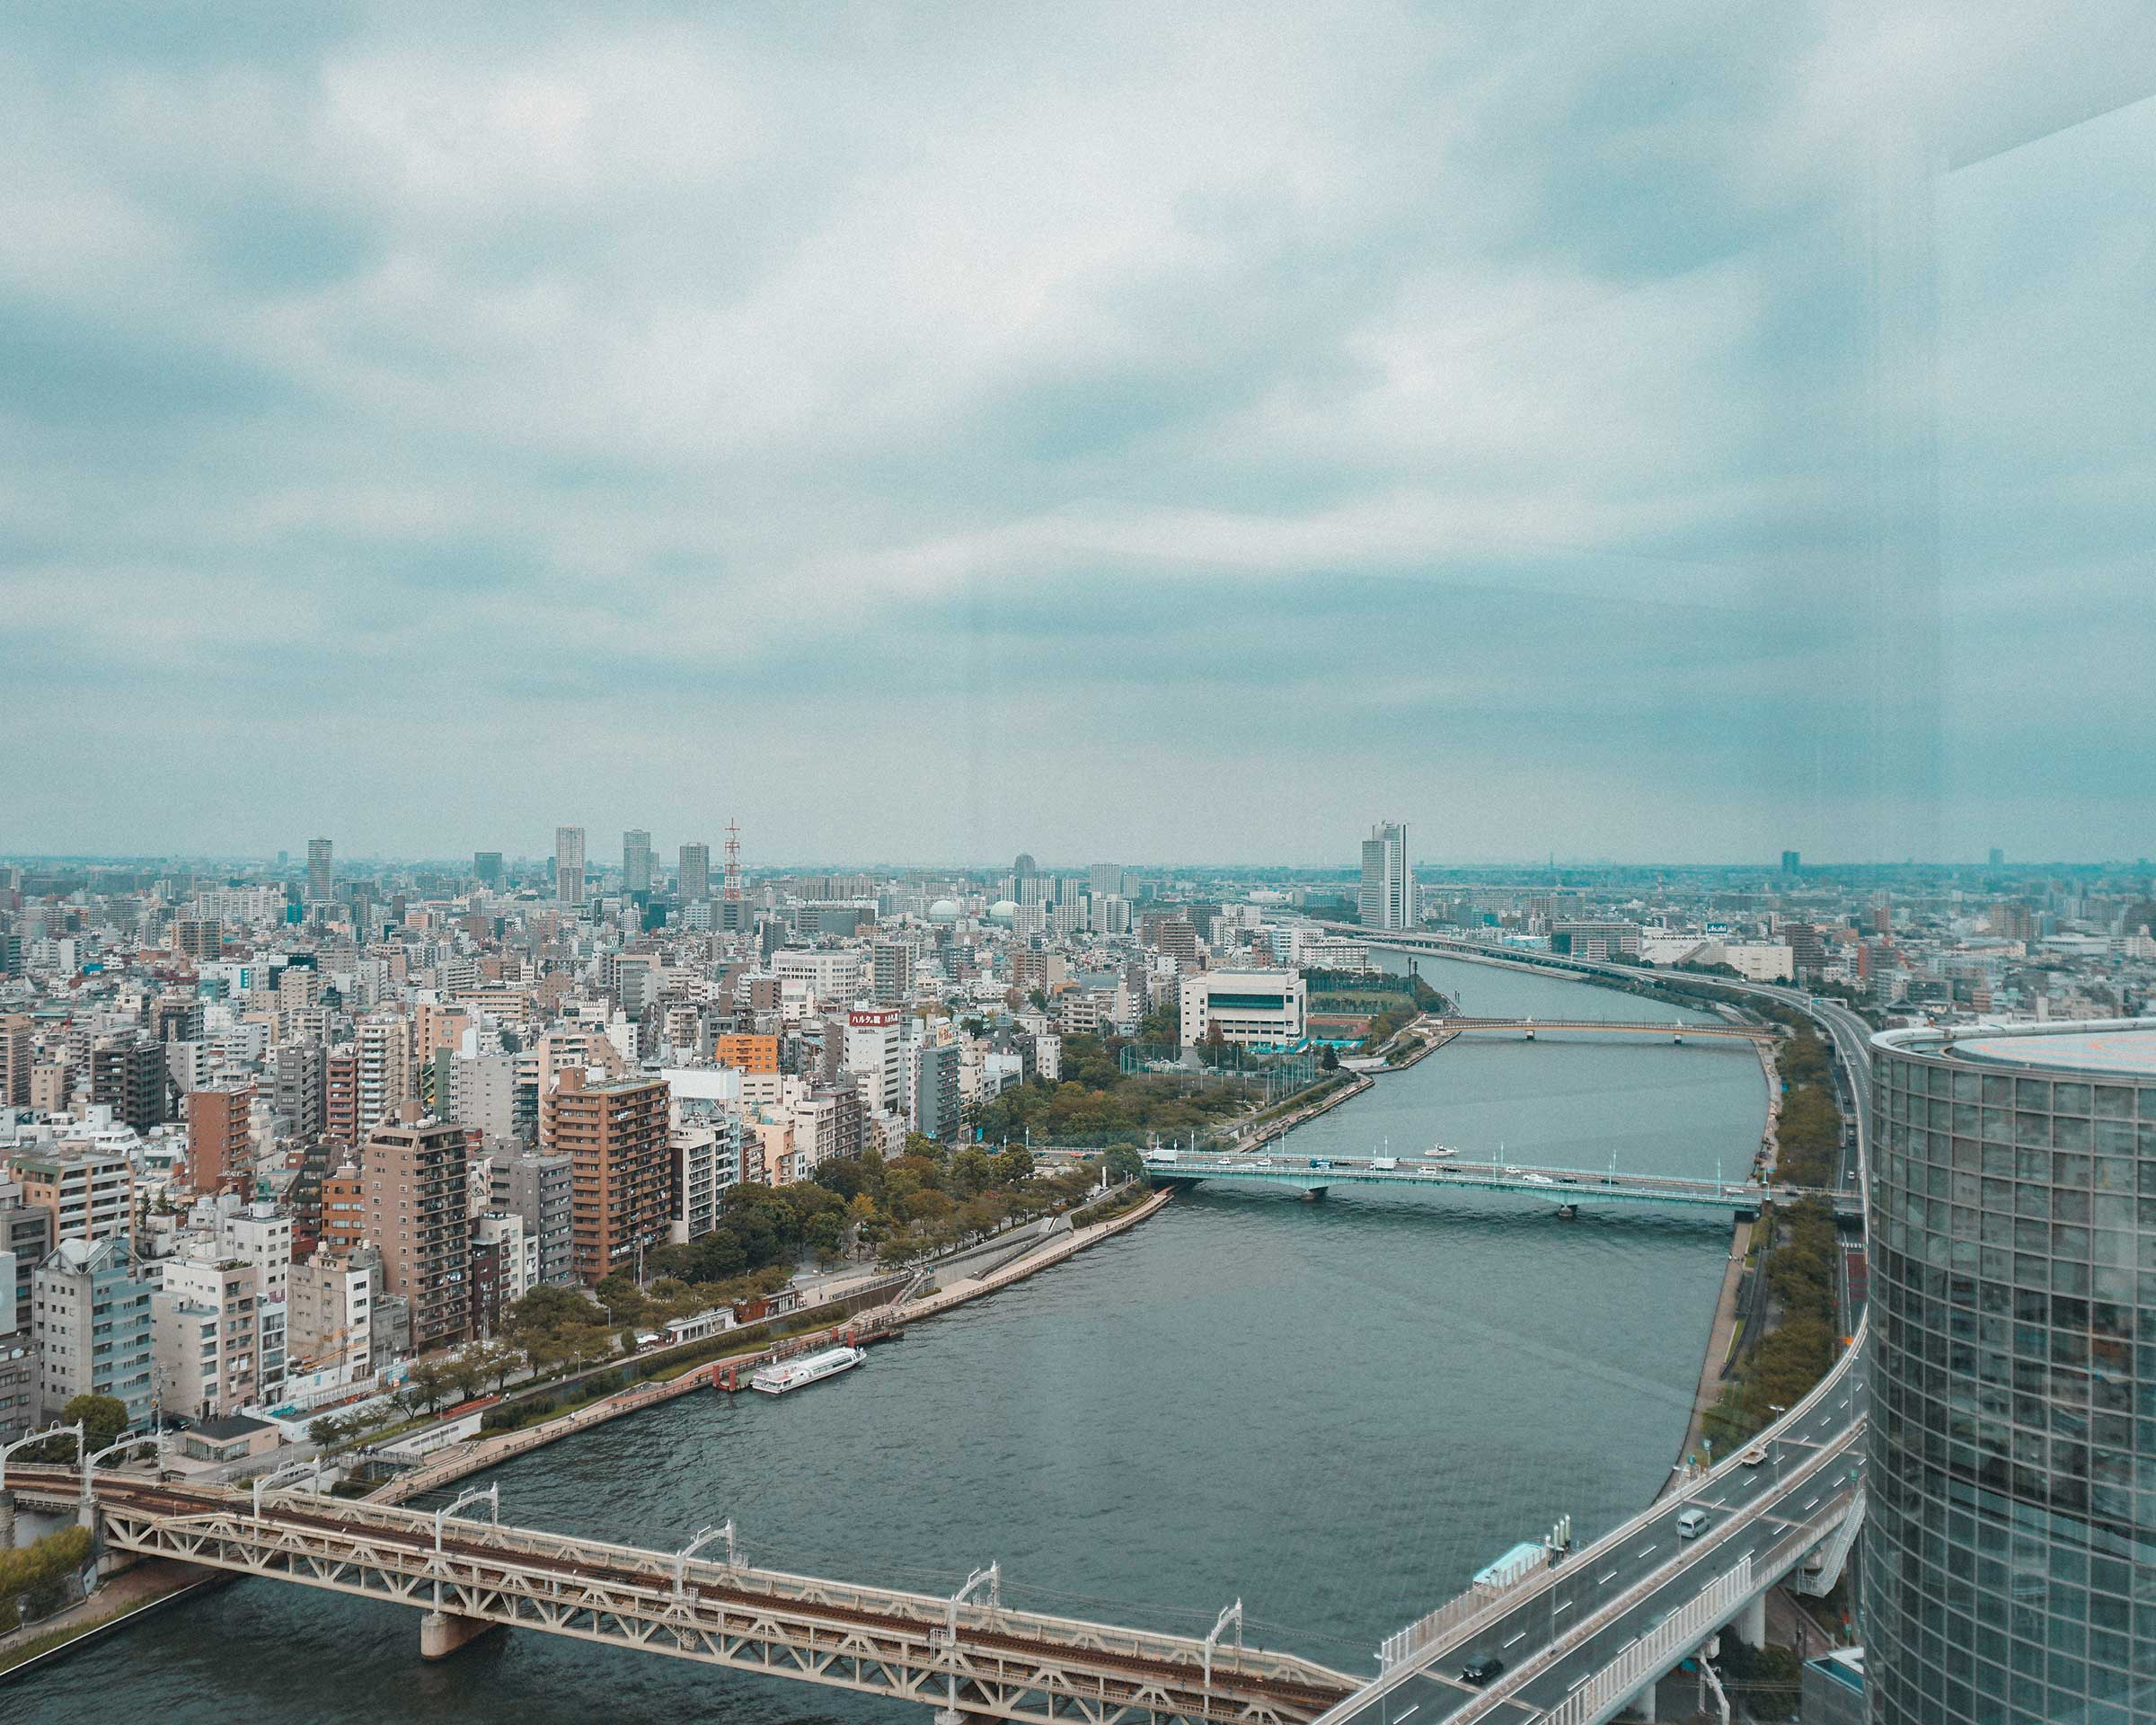 Overlooking Sumida River and the city